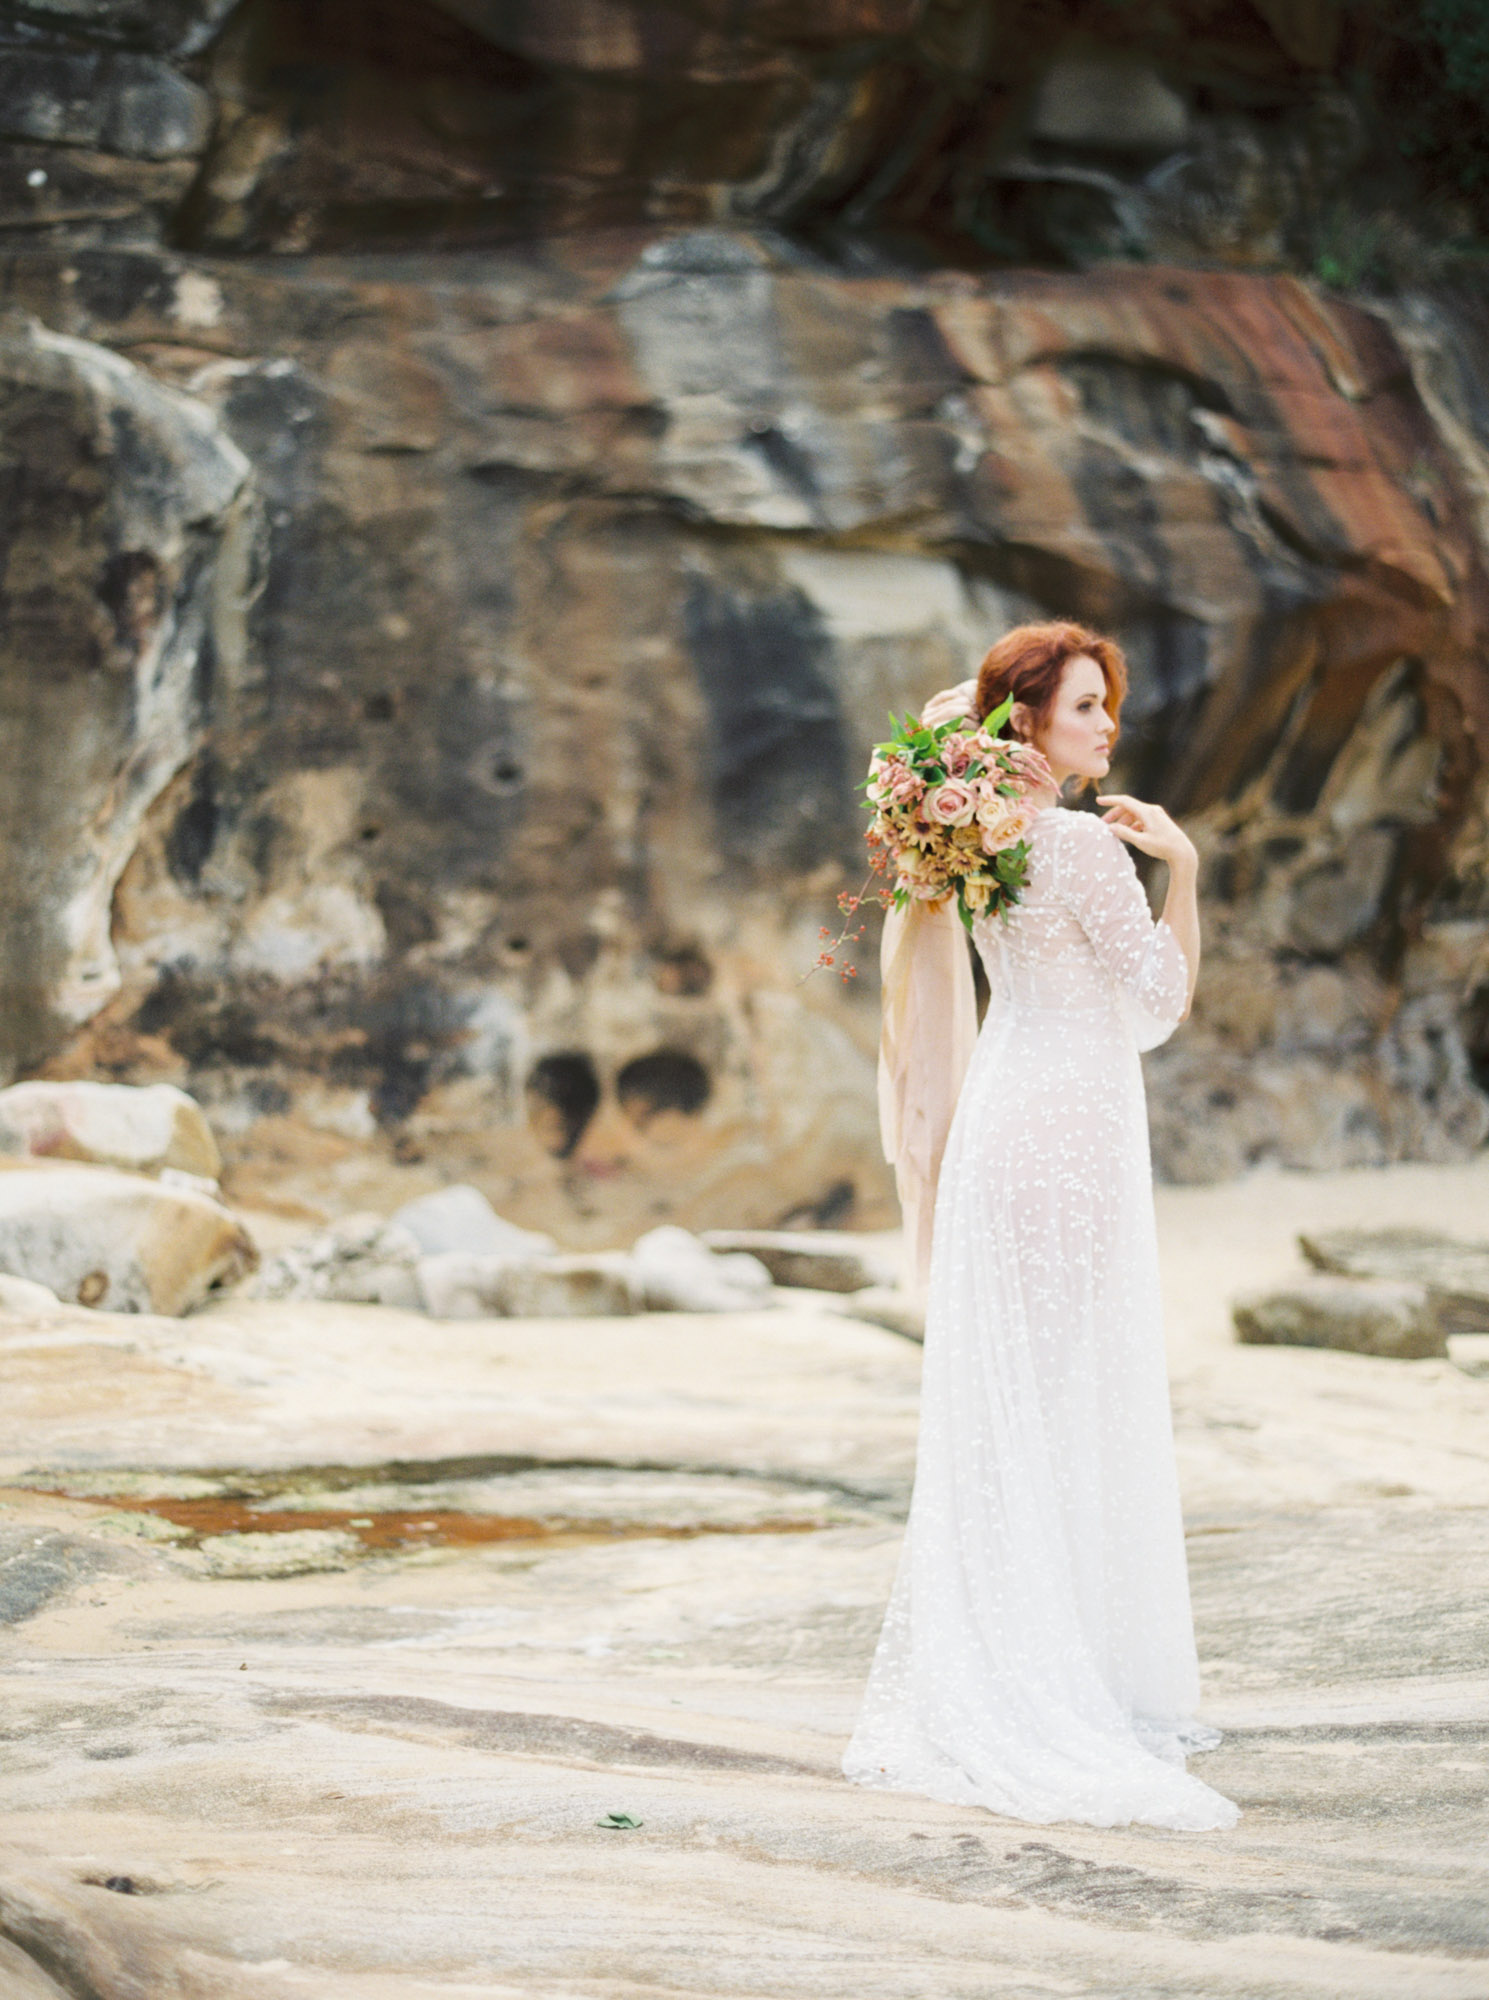 00036- Fine Art Film Newcastle NSW Wedding Photographer Sheri McMahon.jpg